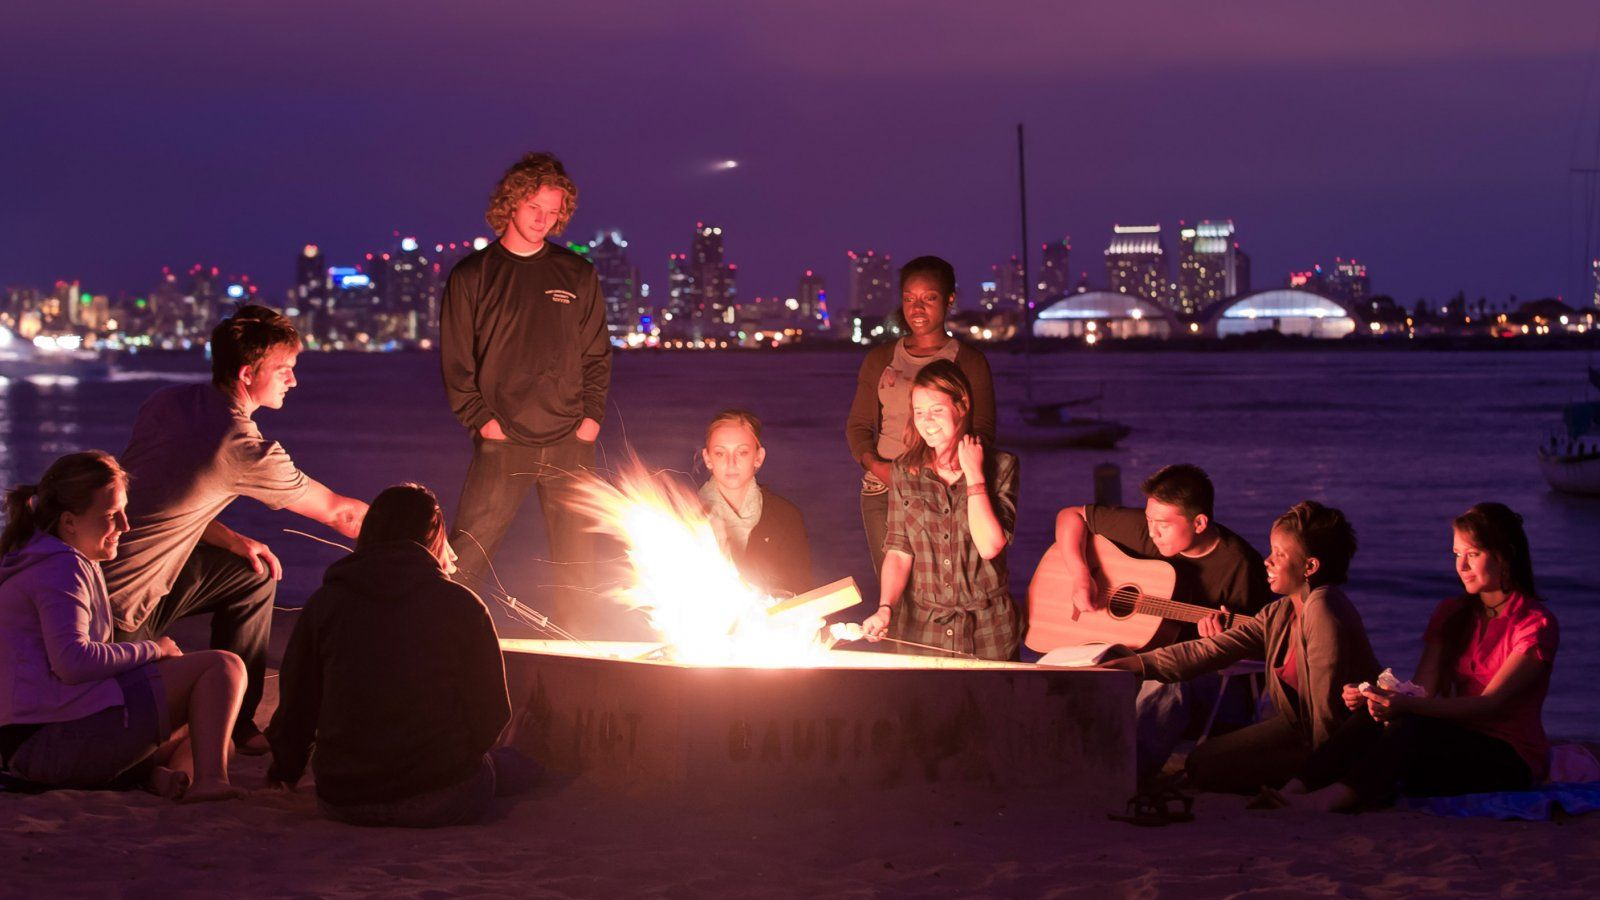 PLNU students gather around a bonfire at Shelter Island.